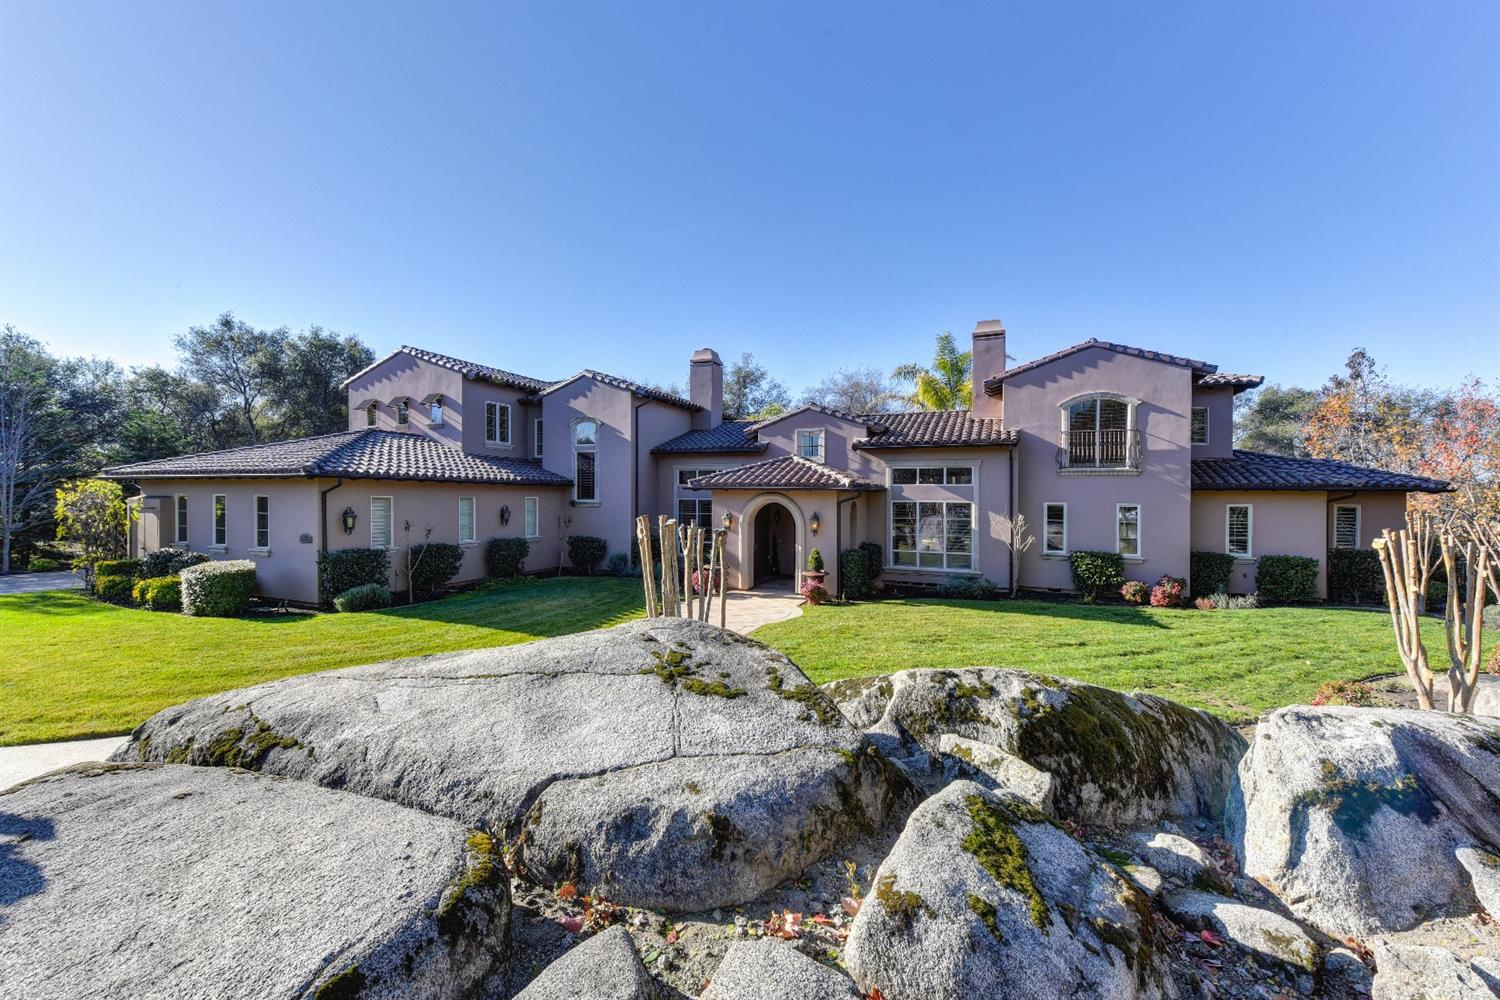 Gorgeous home in the highly sought-after community of the Boulders at Los Lagos, a small enclave of custom estates in the Loomis School District. This exquisitely designed home features handsome Savage cabinetry, top-of-the-line stainless steel appliances, boxed ceilings, plantation shutters, elegant fireplace surrounds and the list goes on. Open floor plan offers spacious rooms, en-suite bedrooms, 1st floor master retreat & storage galore. 1.7-acre lot has rock outcroppings, pool/spa & privacy.